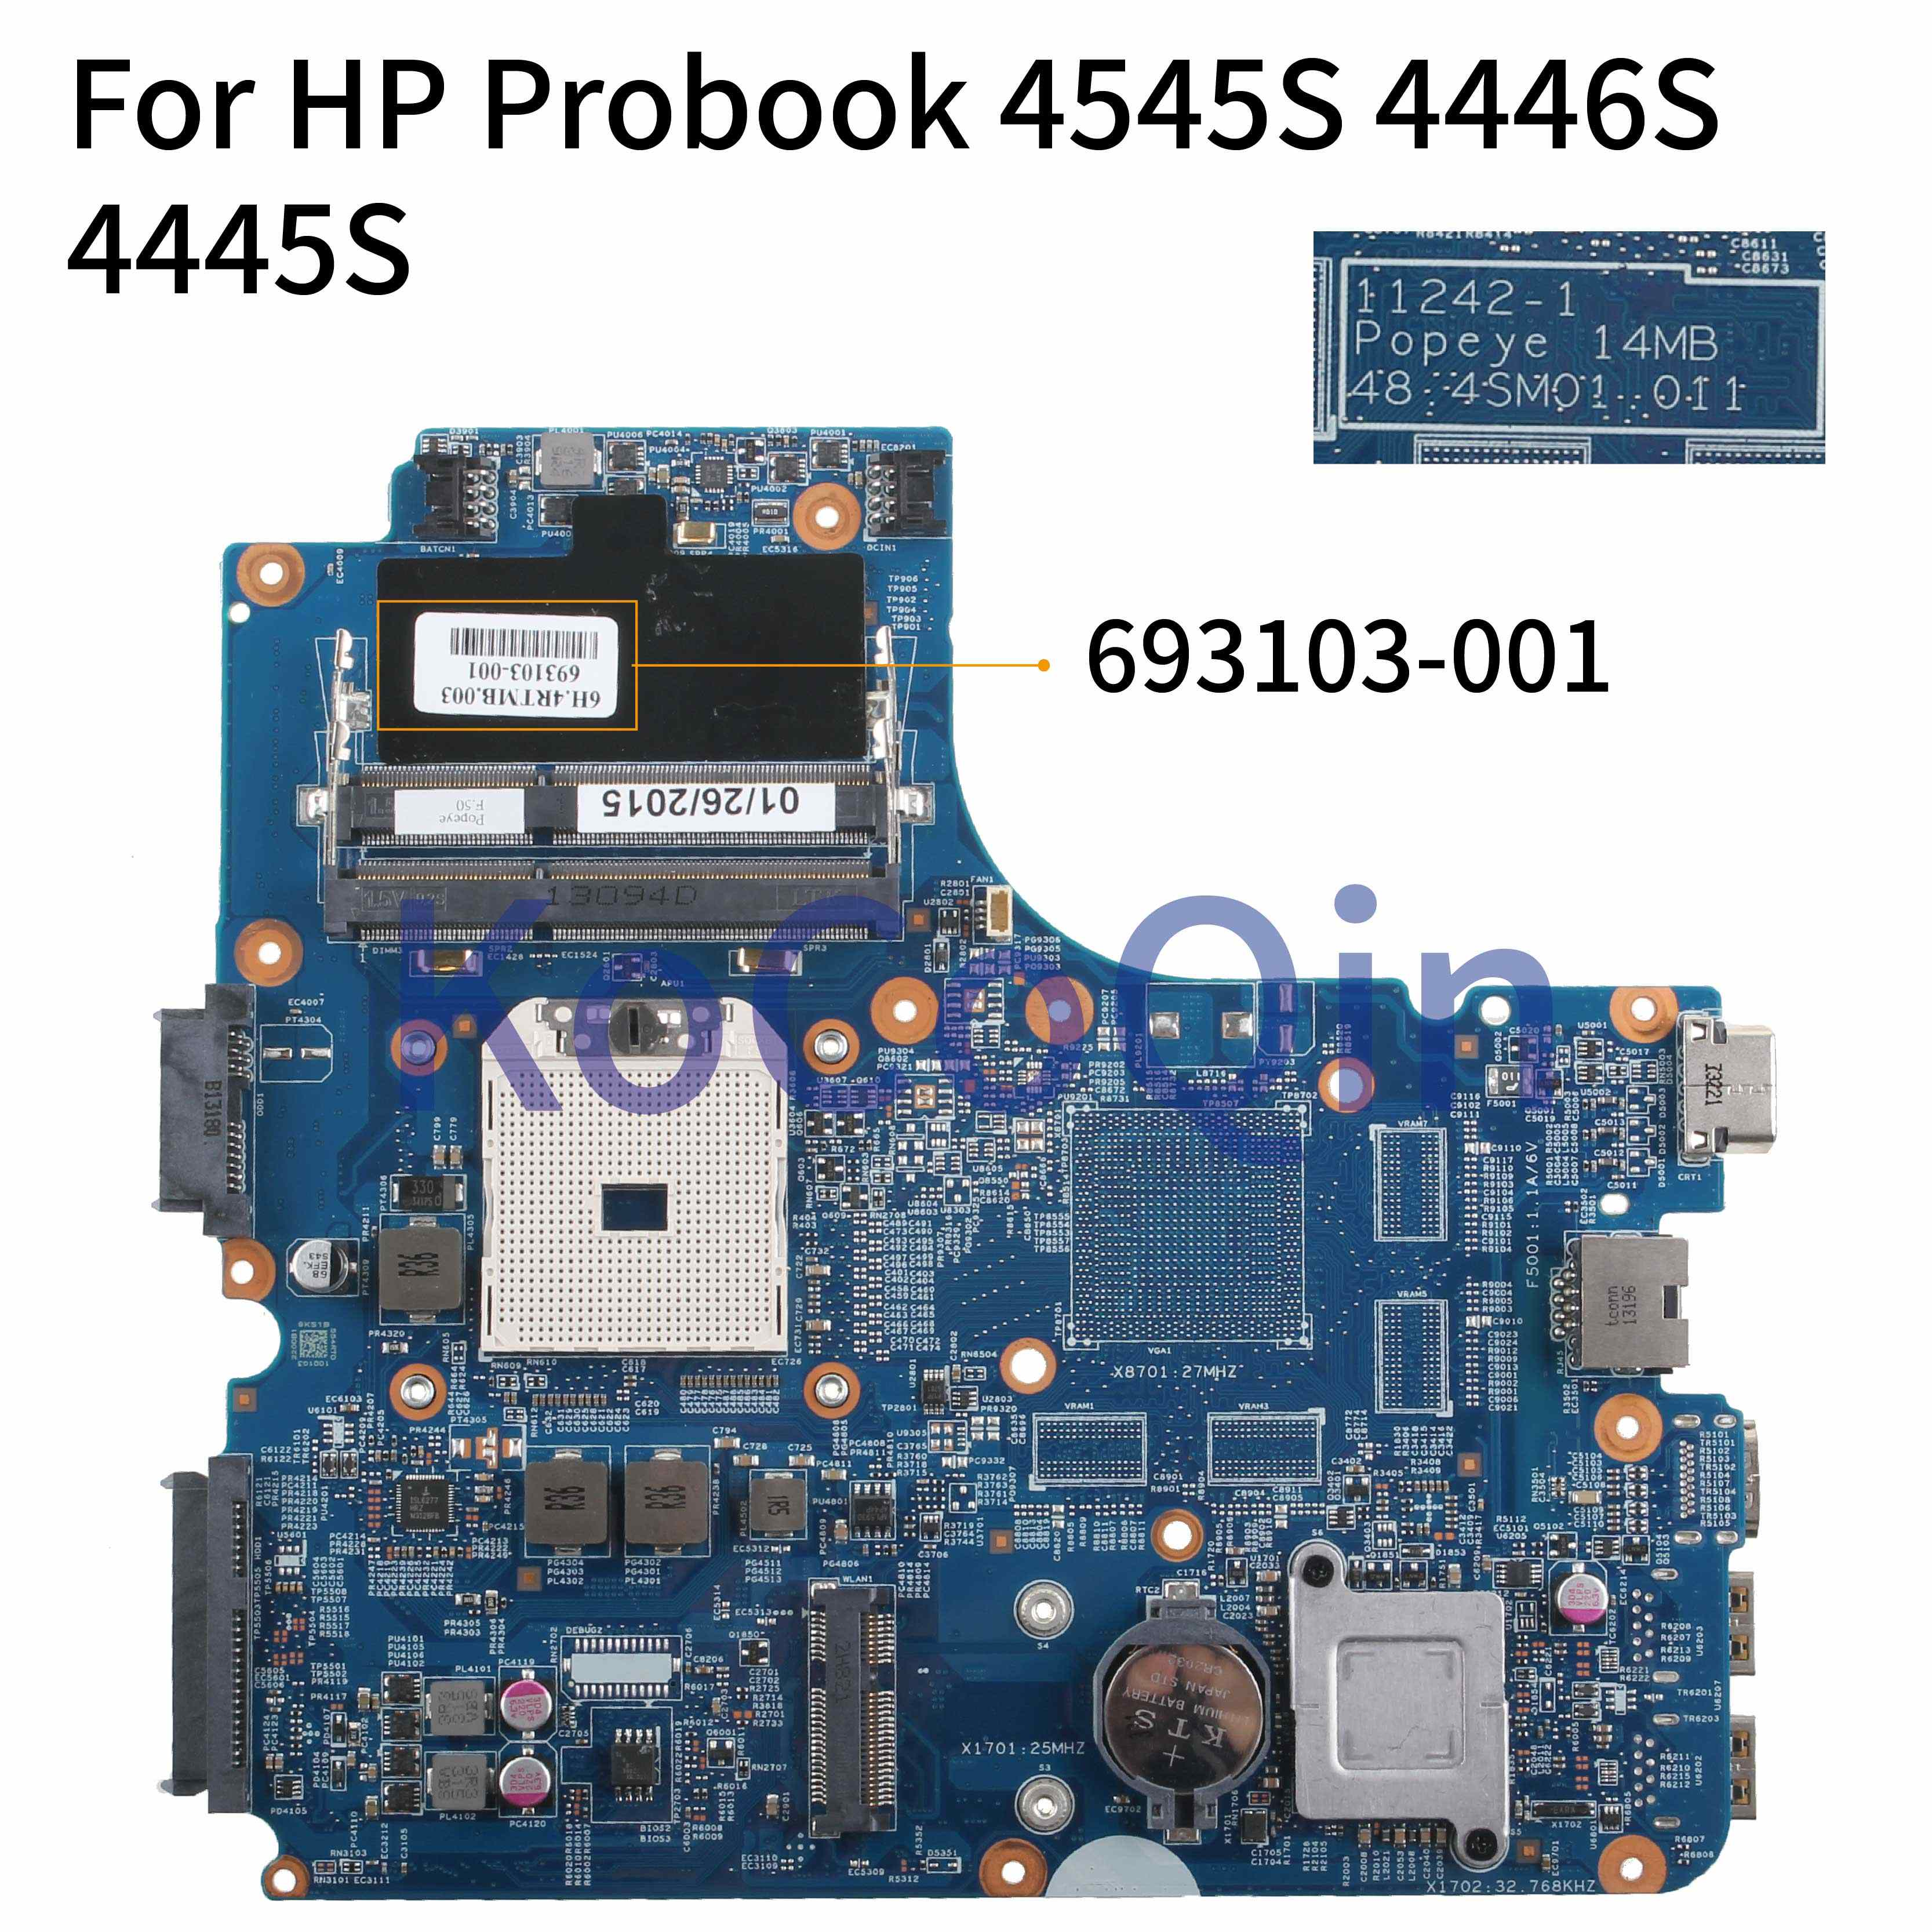 KoCoQin Laptop motherboard Para HP Probook 4545S 4445S 4540S 4440S Mainboard 693103-001 693103- 501 11242-1 48.4SM01.011 AMD